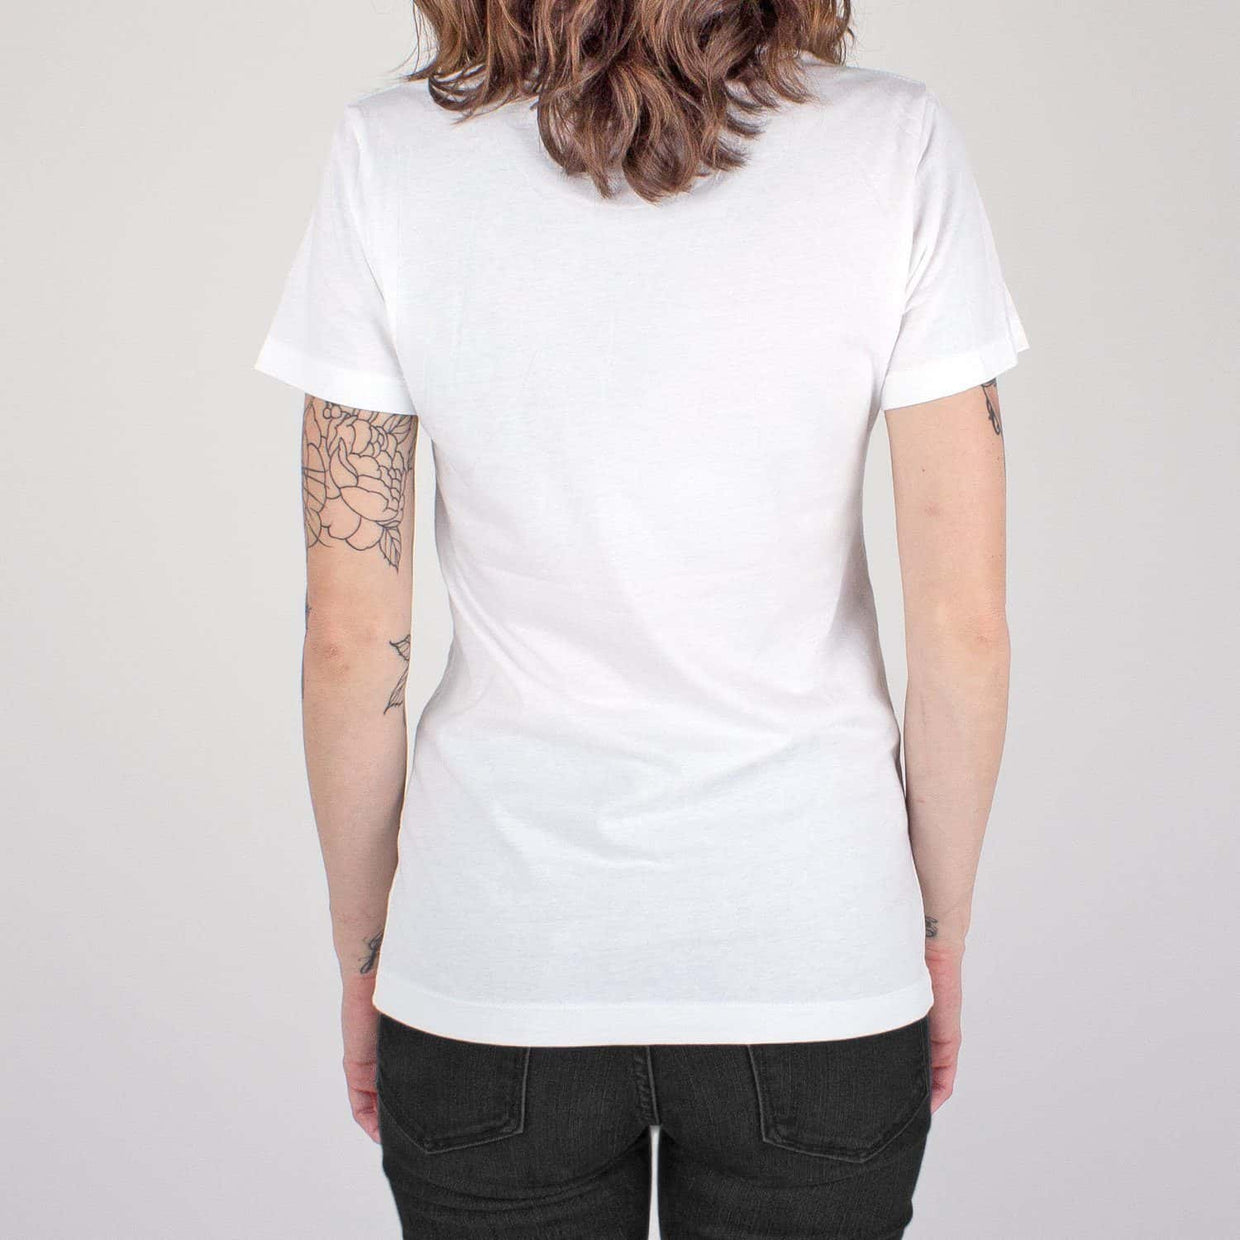 116 'Red Label' Women's T-Shirt - White